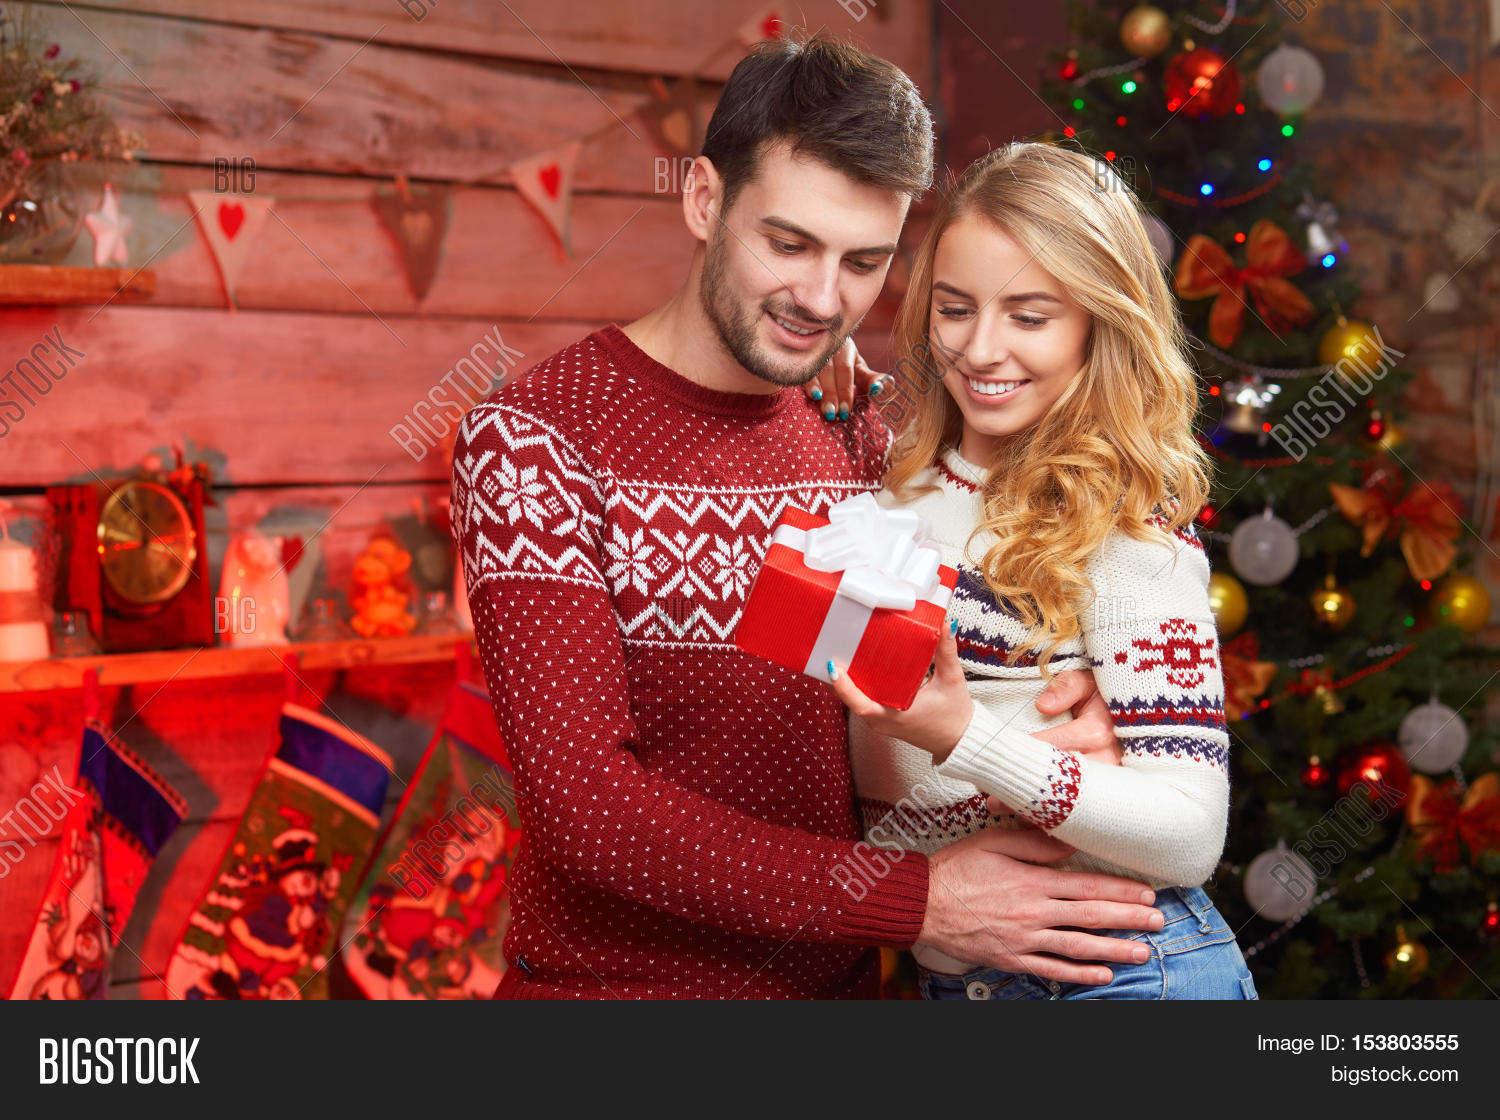 young couple sharing christmas present young family embracing and holding red gift box with decorations